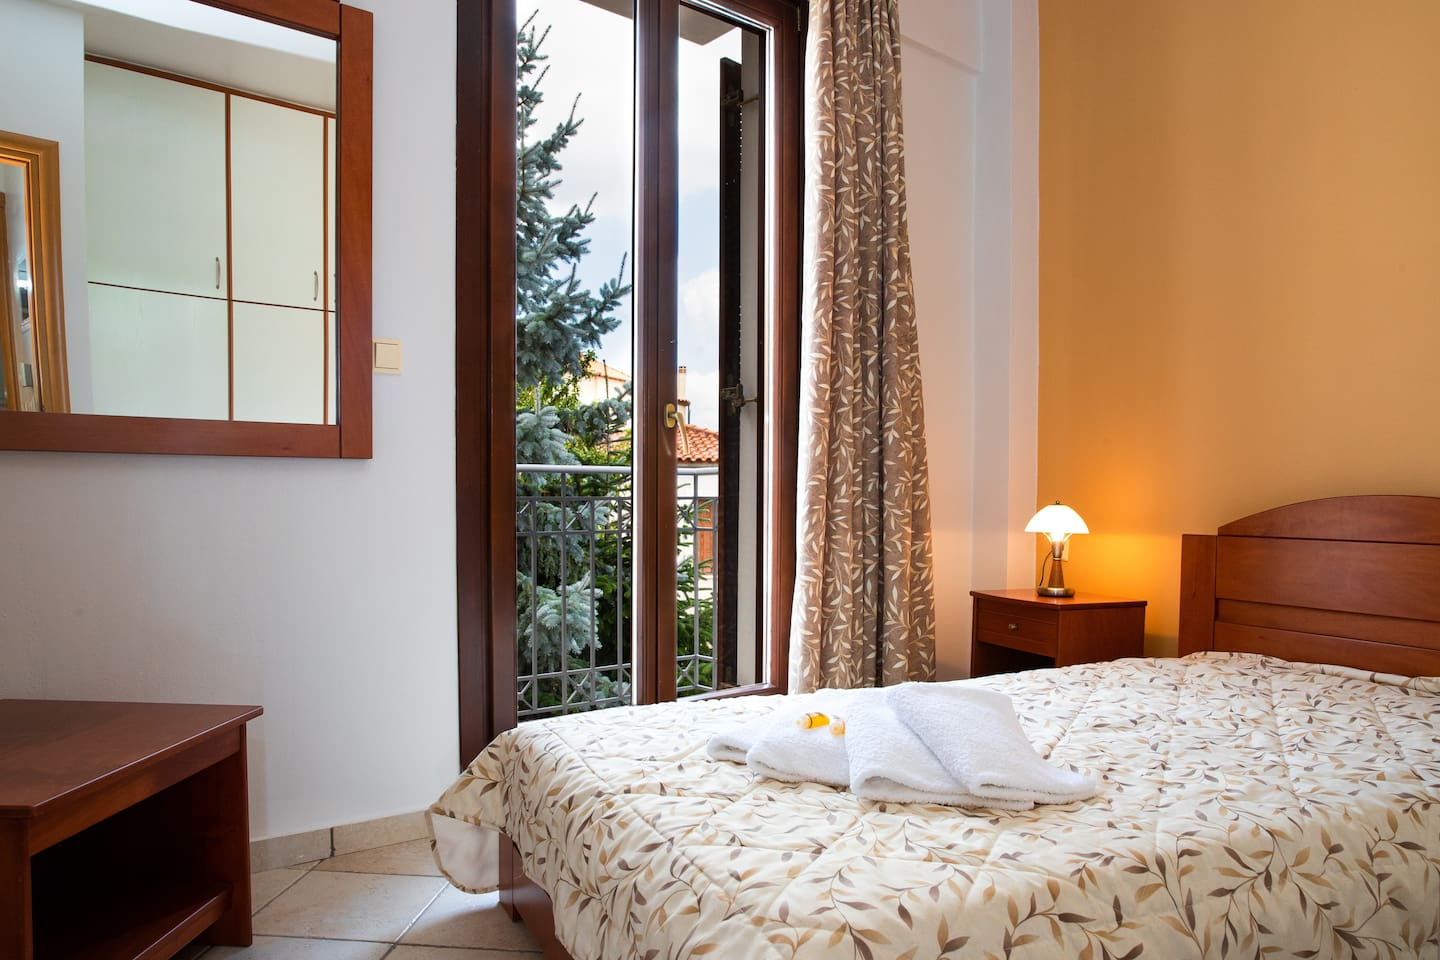 Great place for couples and familes at the heart of Arachova. Two balconies and window with view to town